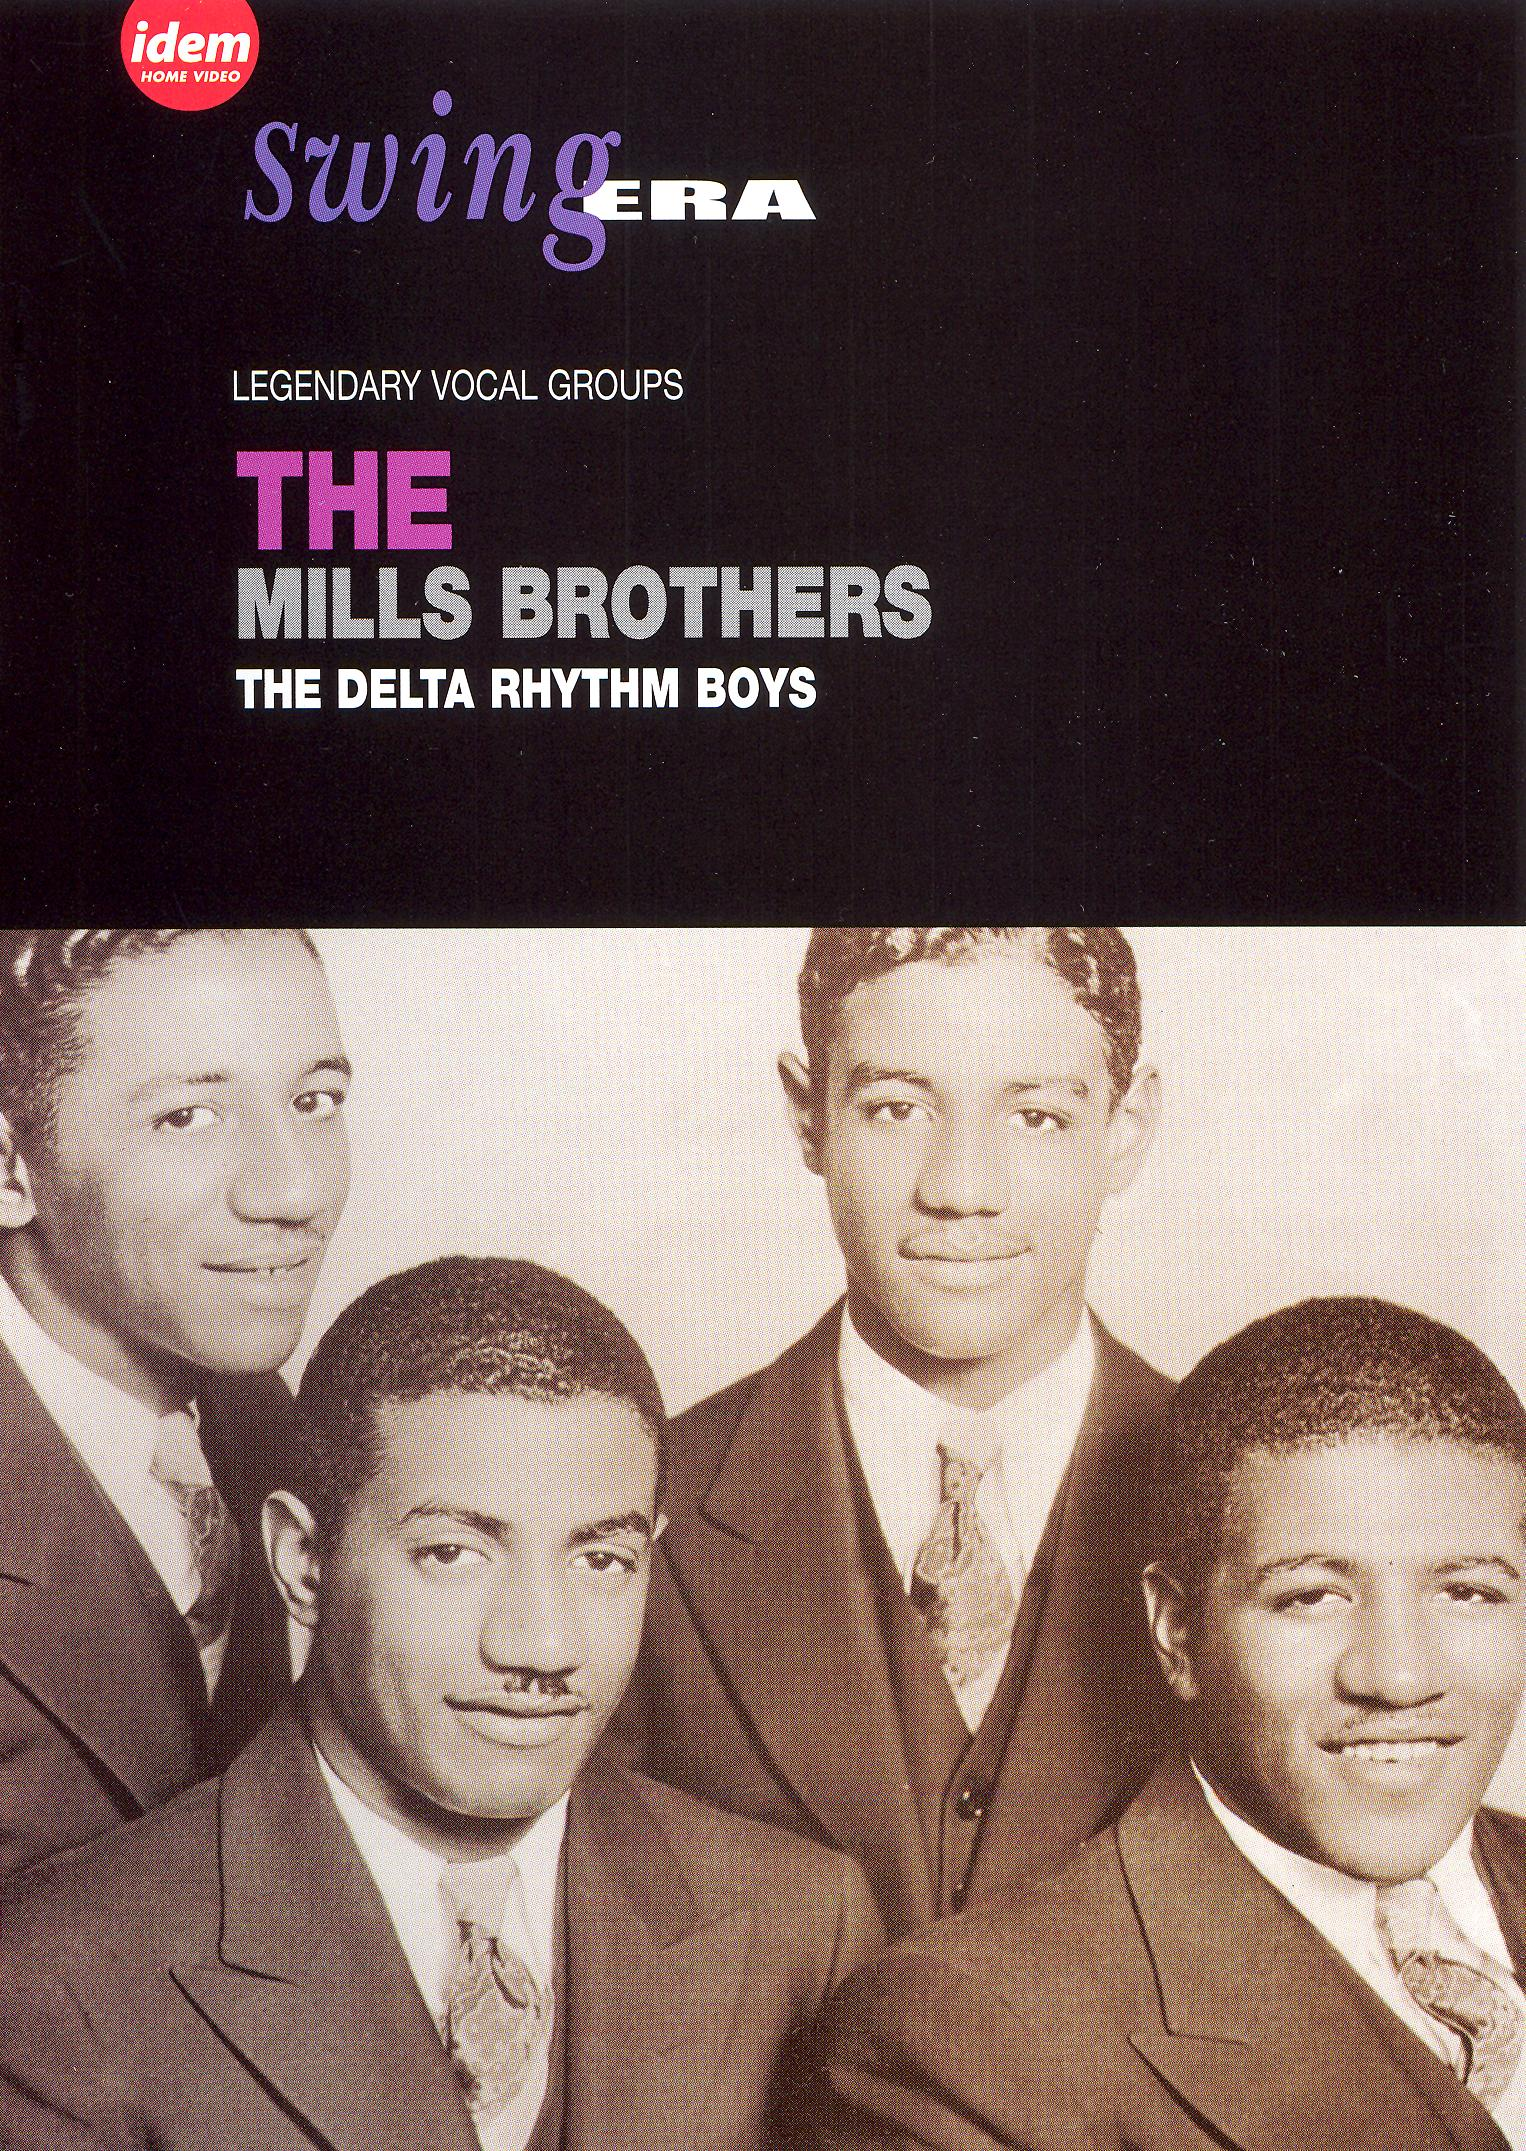 Swing Era: The Mills Brothers/The Delta Rhythm Boys - Legendary Vocal Groups